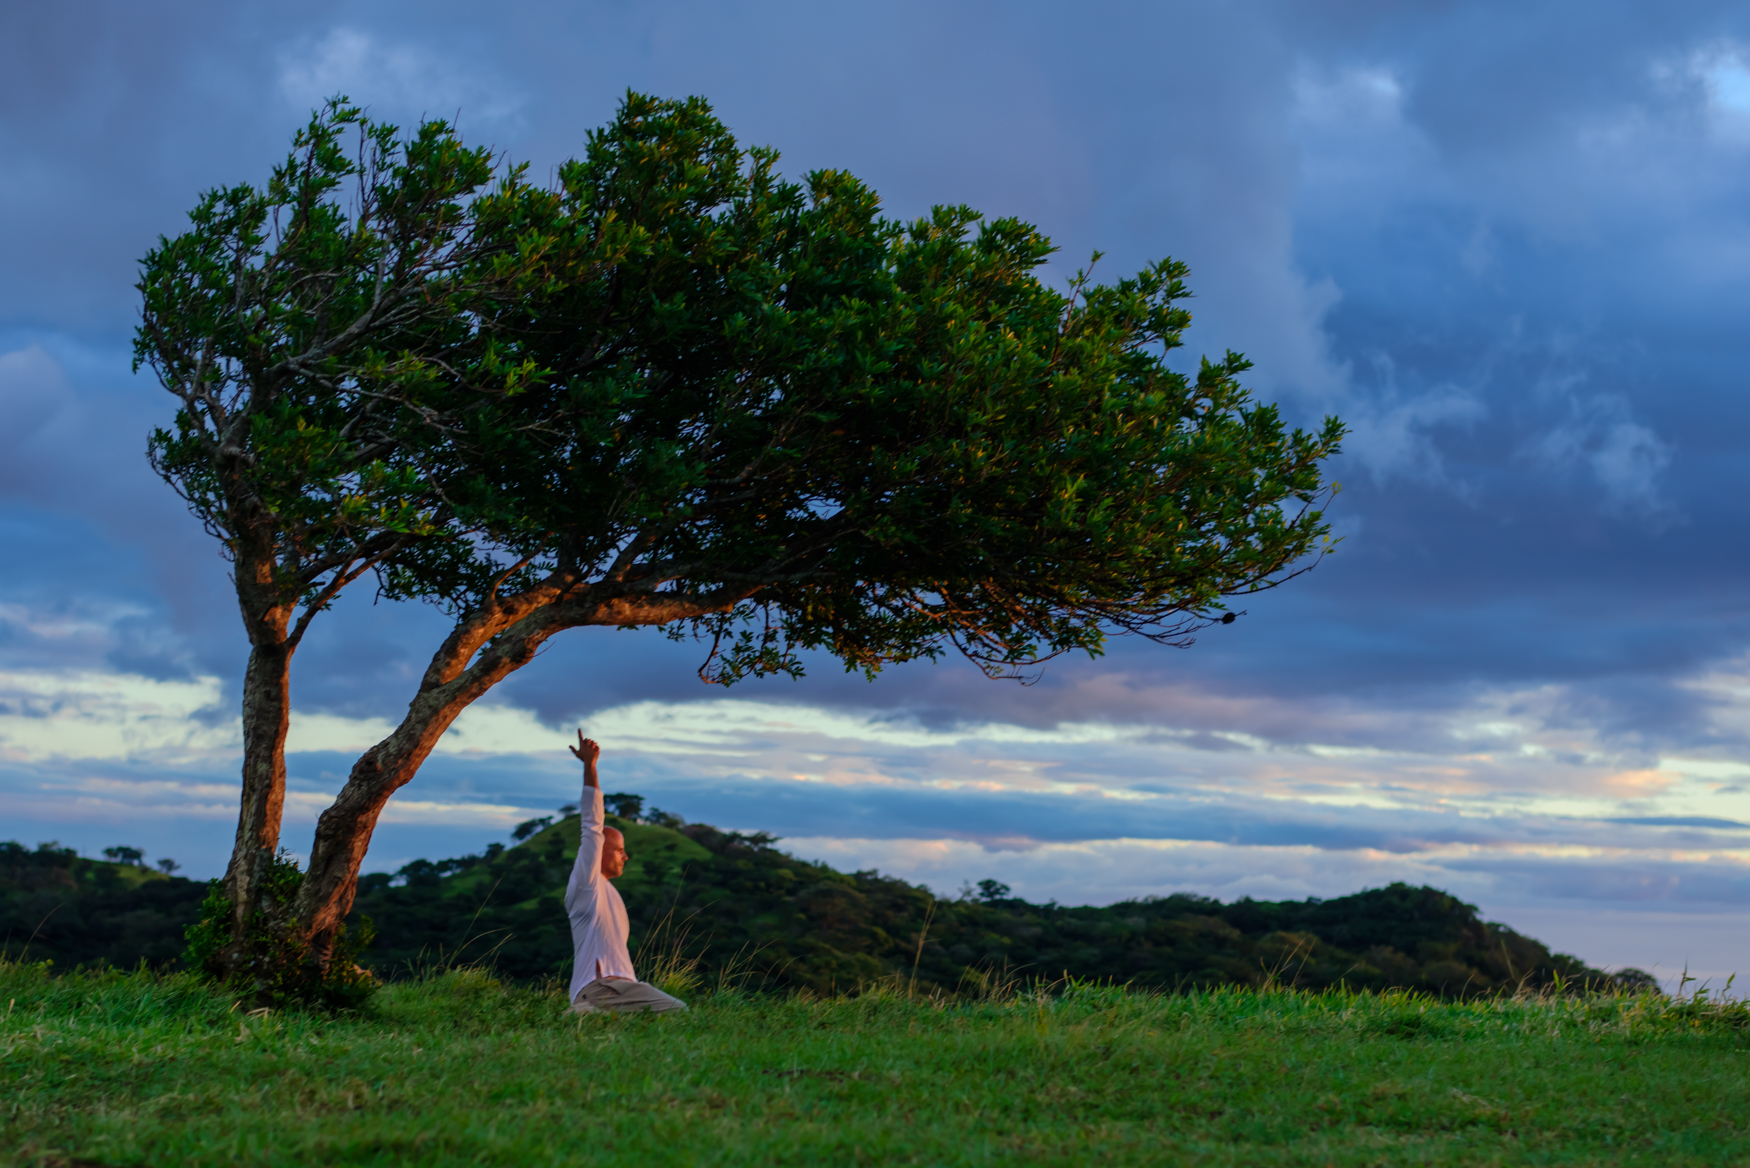 Yoga-Inspired-Practices-Photography-Costa-Rica-5.jpg